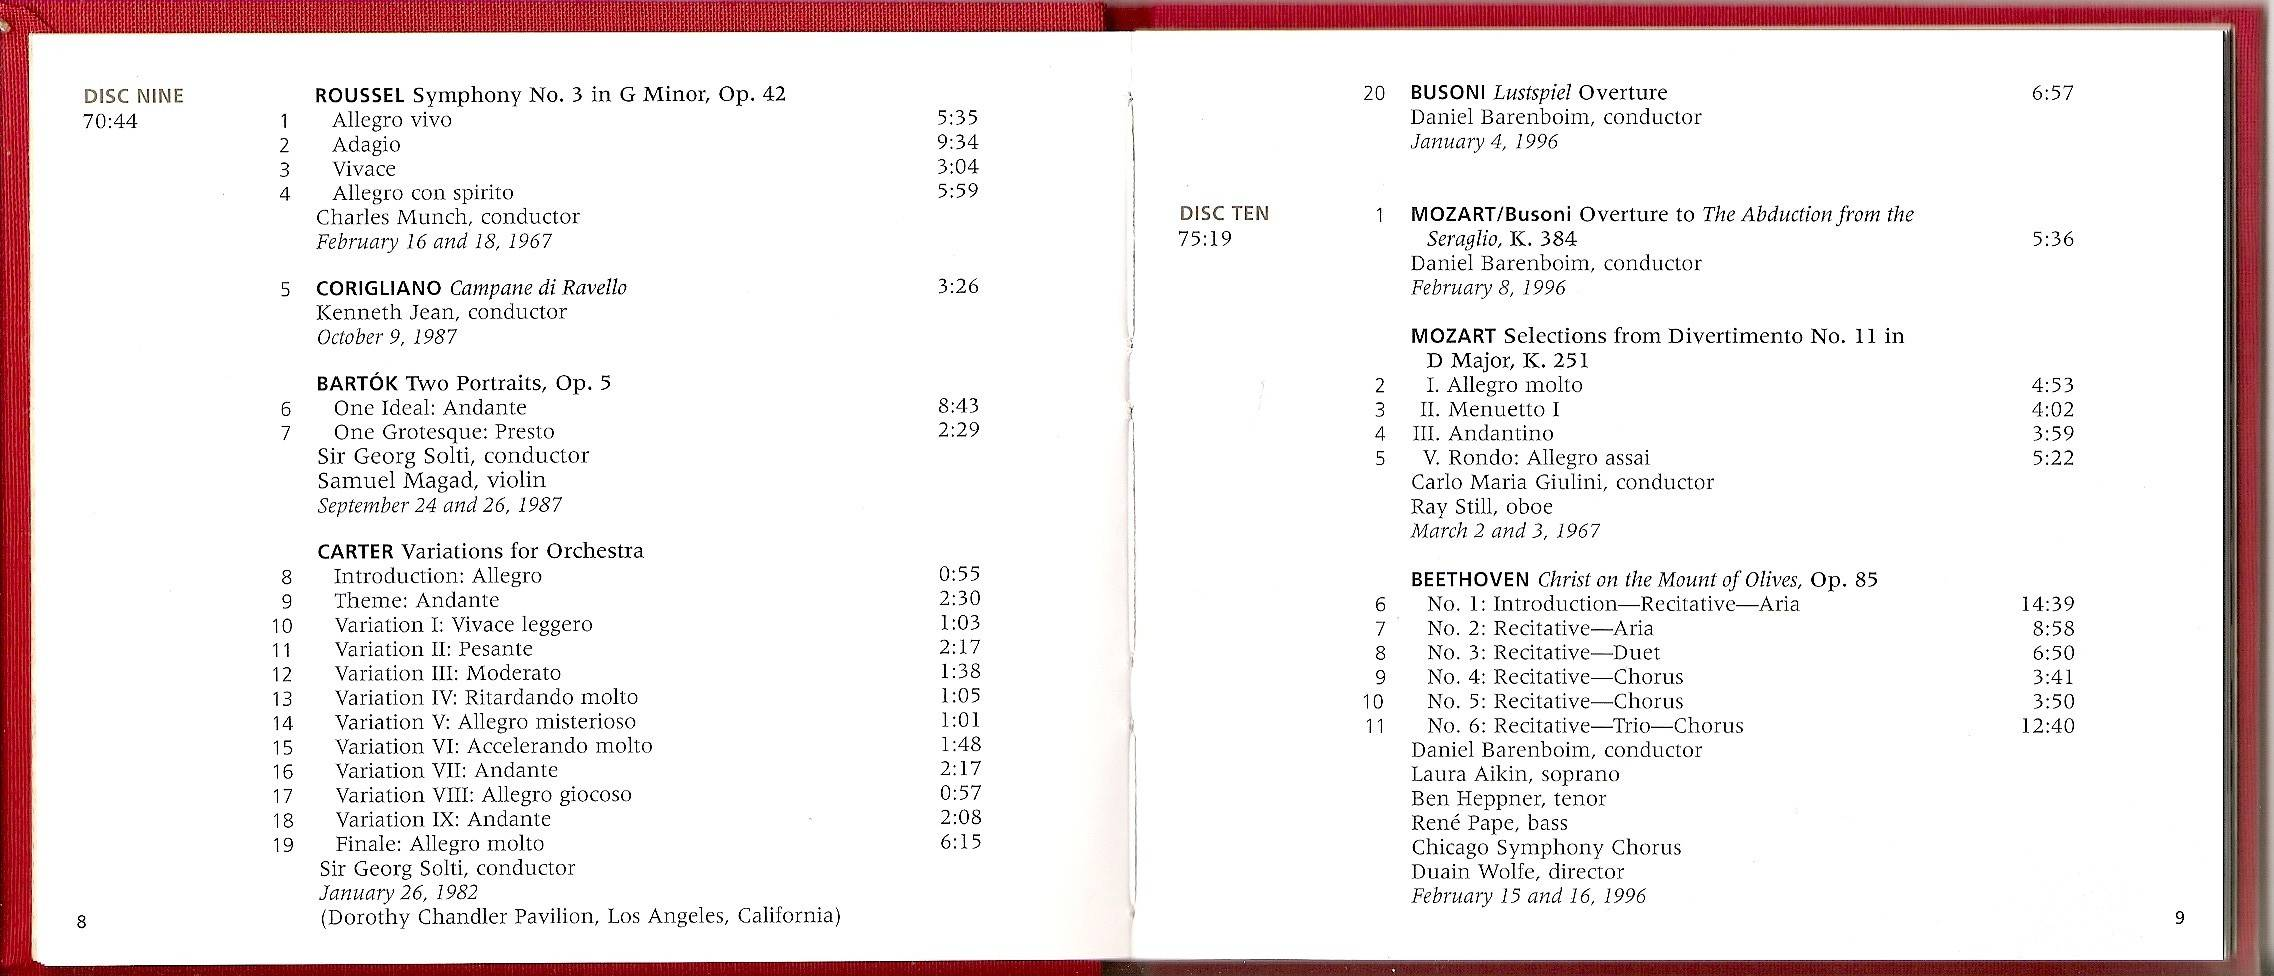 Chicago Symphony Orchestra - From The Archives: The CSO in the 20th Century: Collector's Choice, 10-CD set (2000) (page 5 of 5)